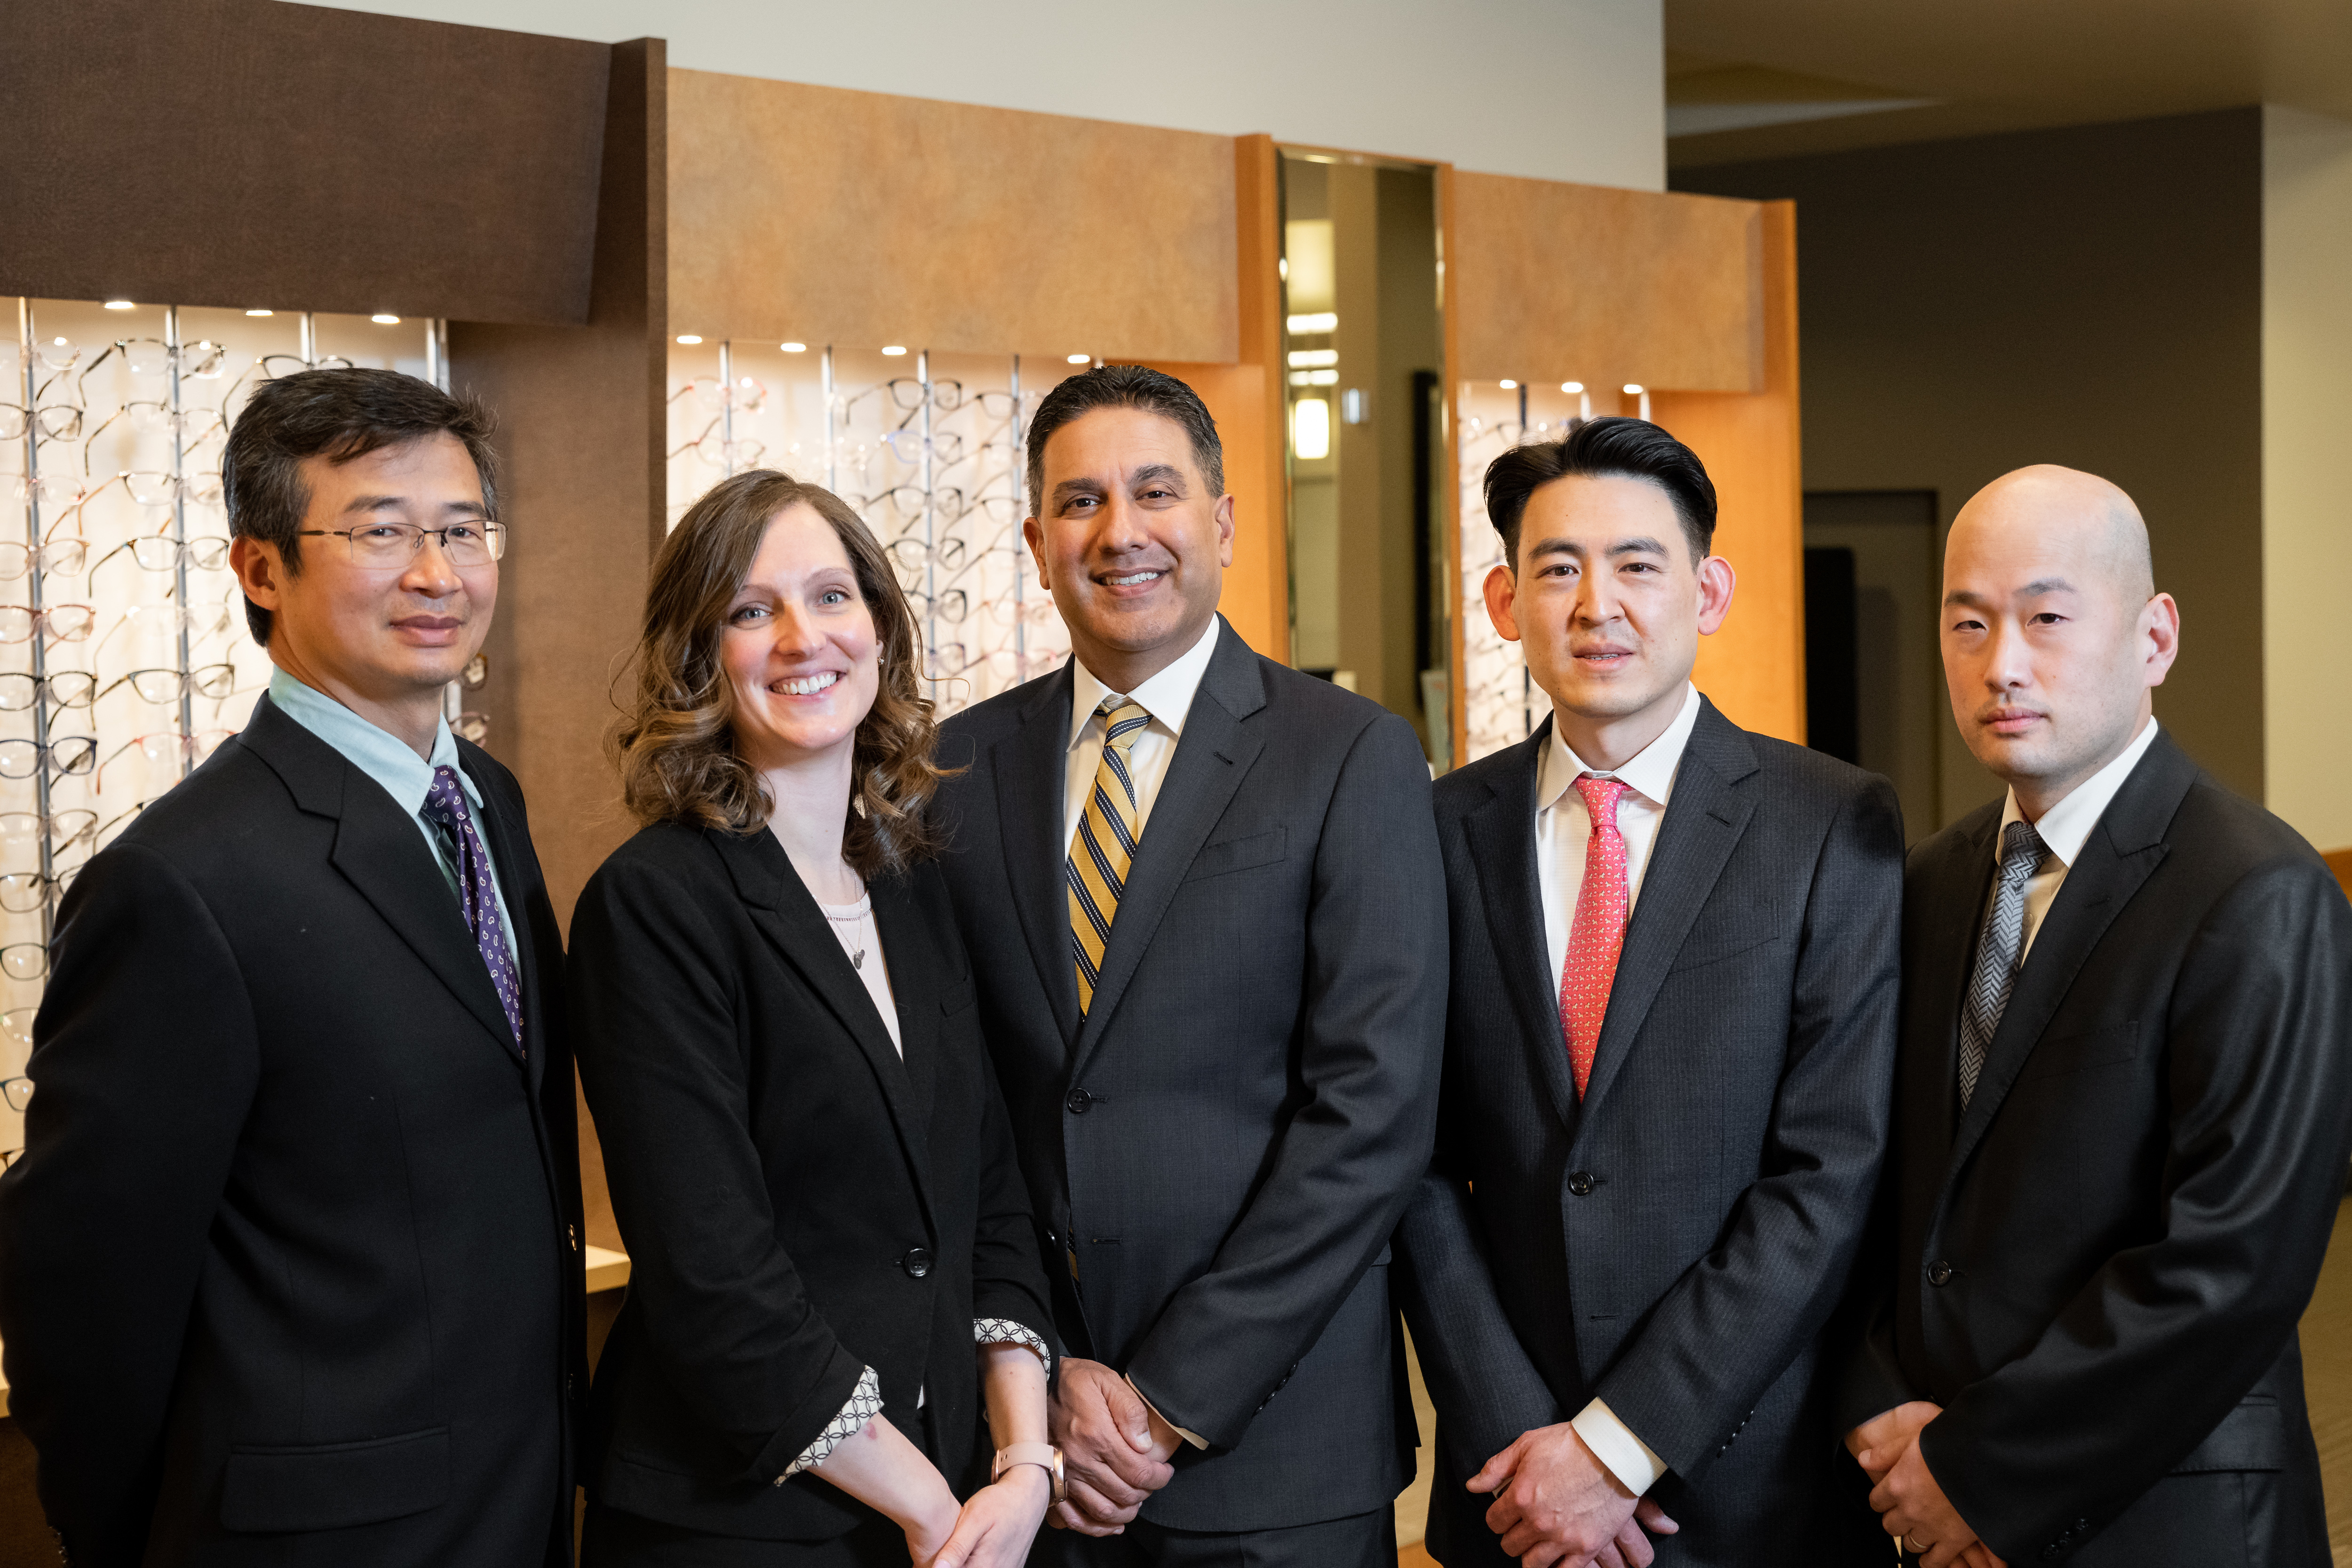 Image of Dr. Chiu, Dr. Patel, Dr. Taylor, and Dr. Pham